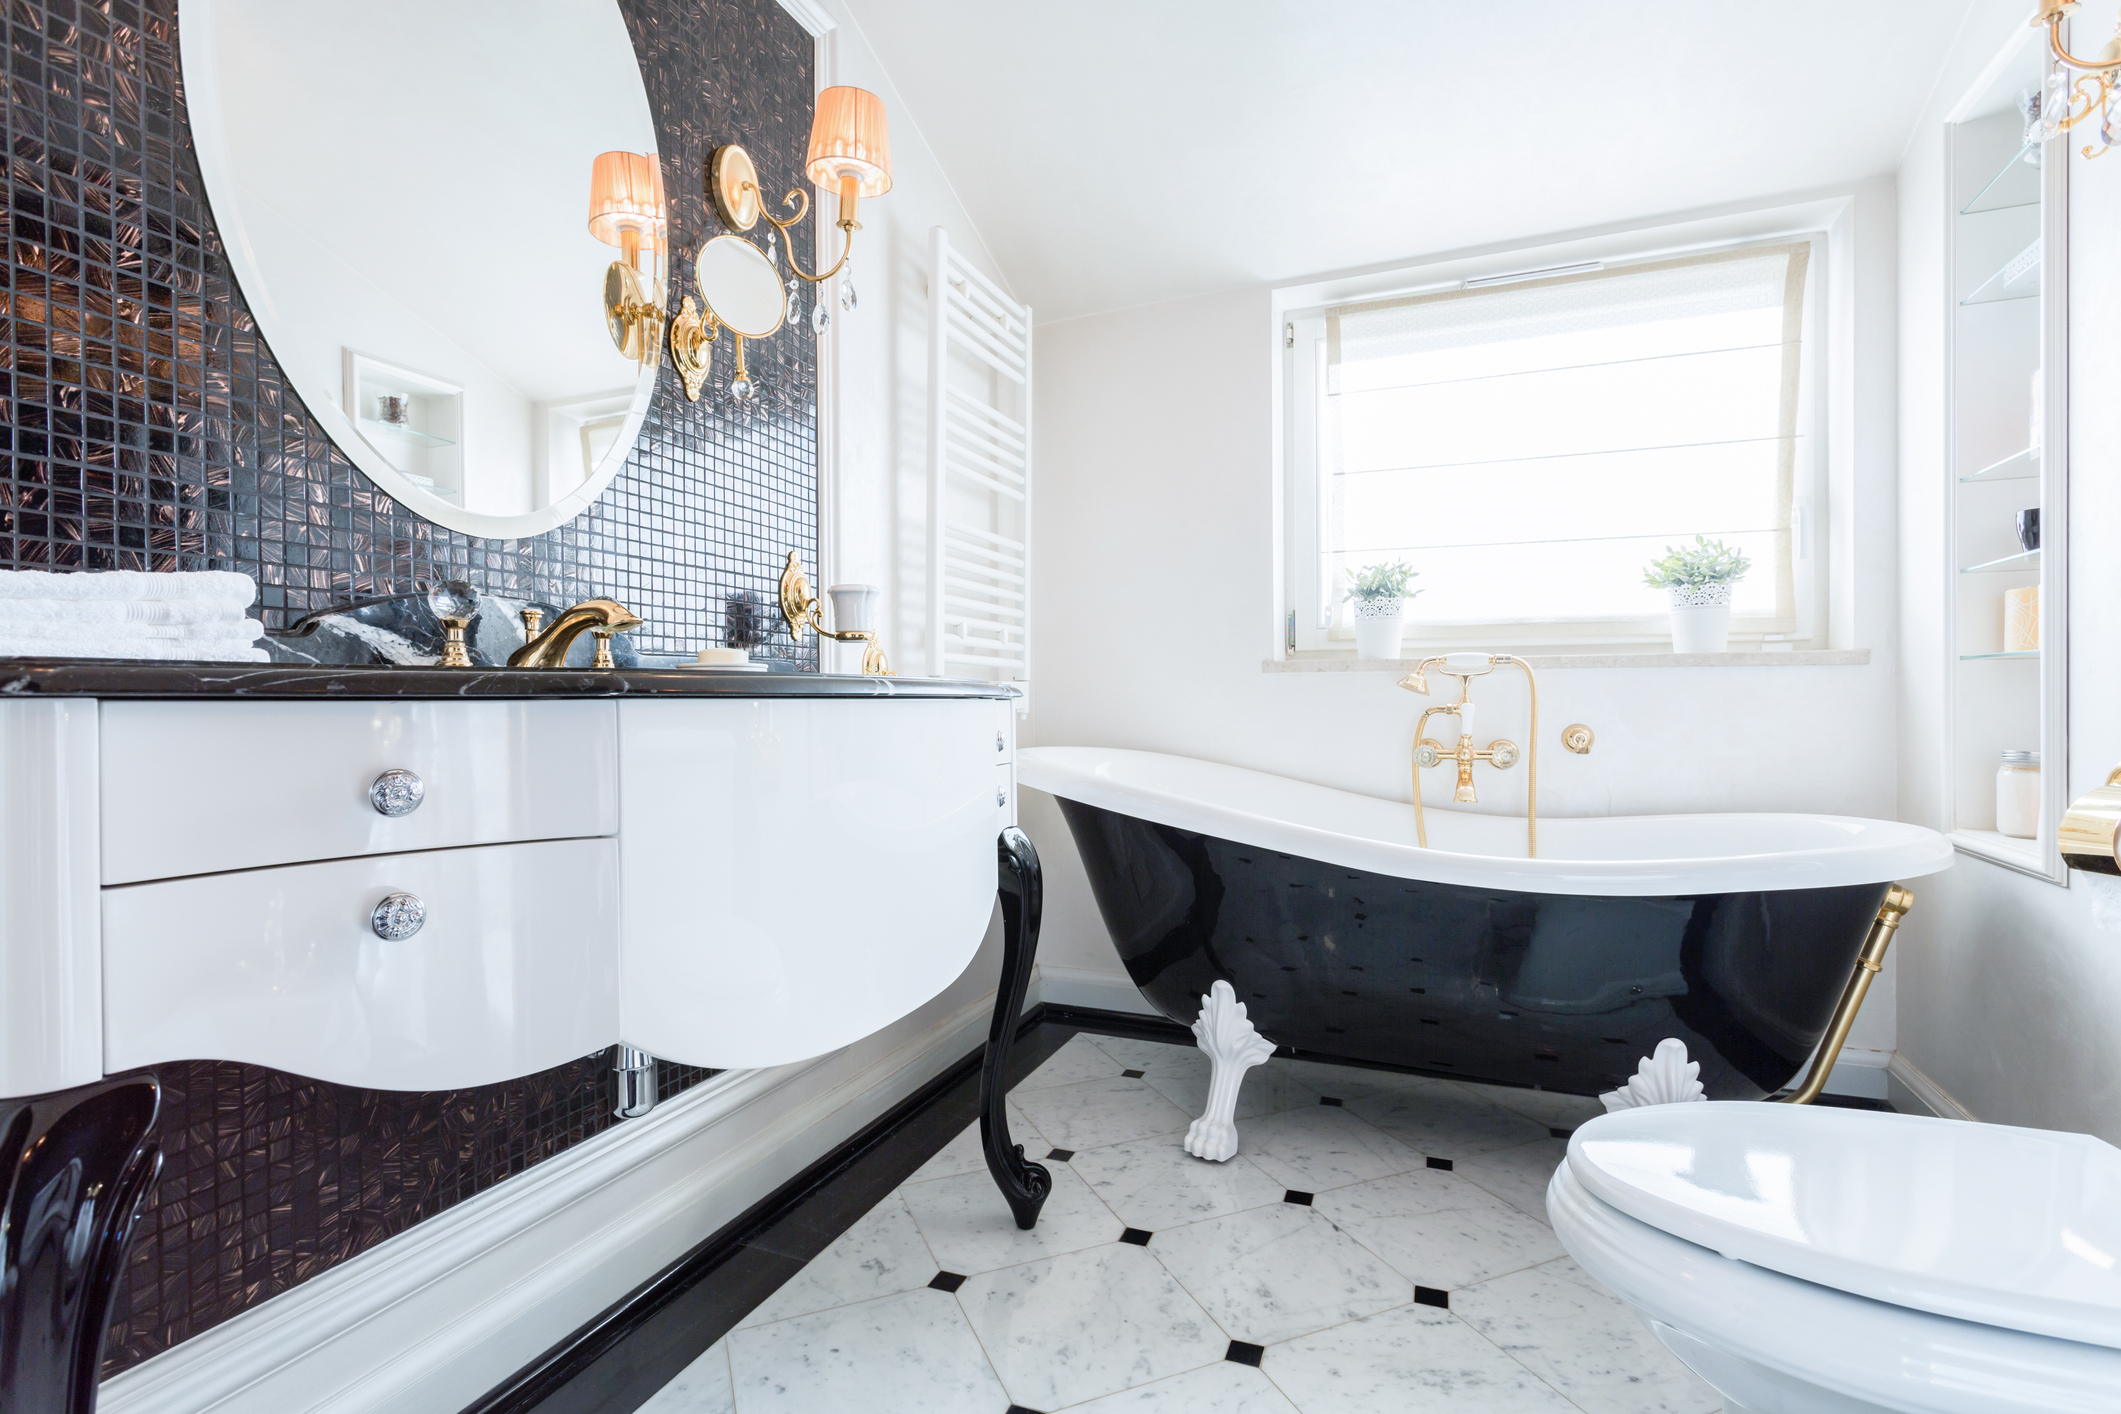 Up With Homes, remodel, bathroom remodel, master bath remodel, bathroom update, local remodeling company